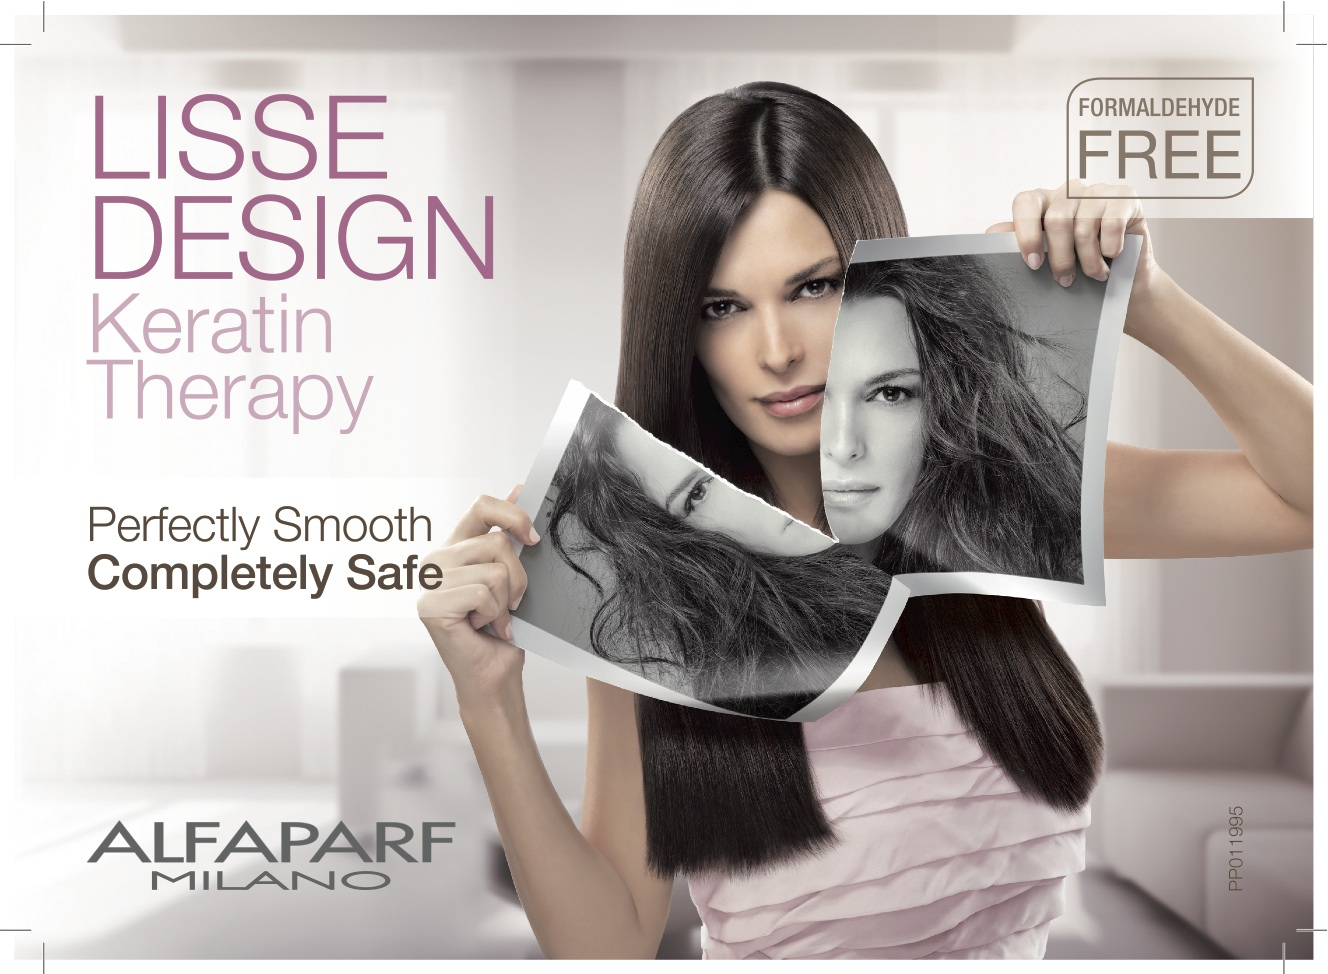 Alfaparf Lisse Design Keratin Therapy Keratin Treatment